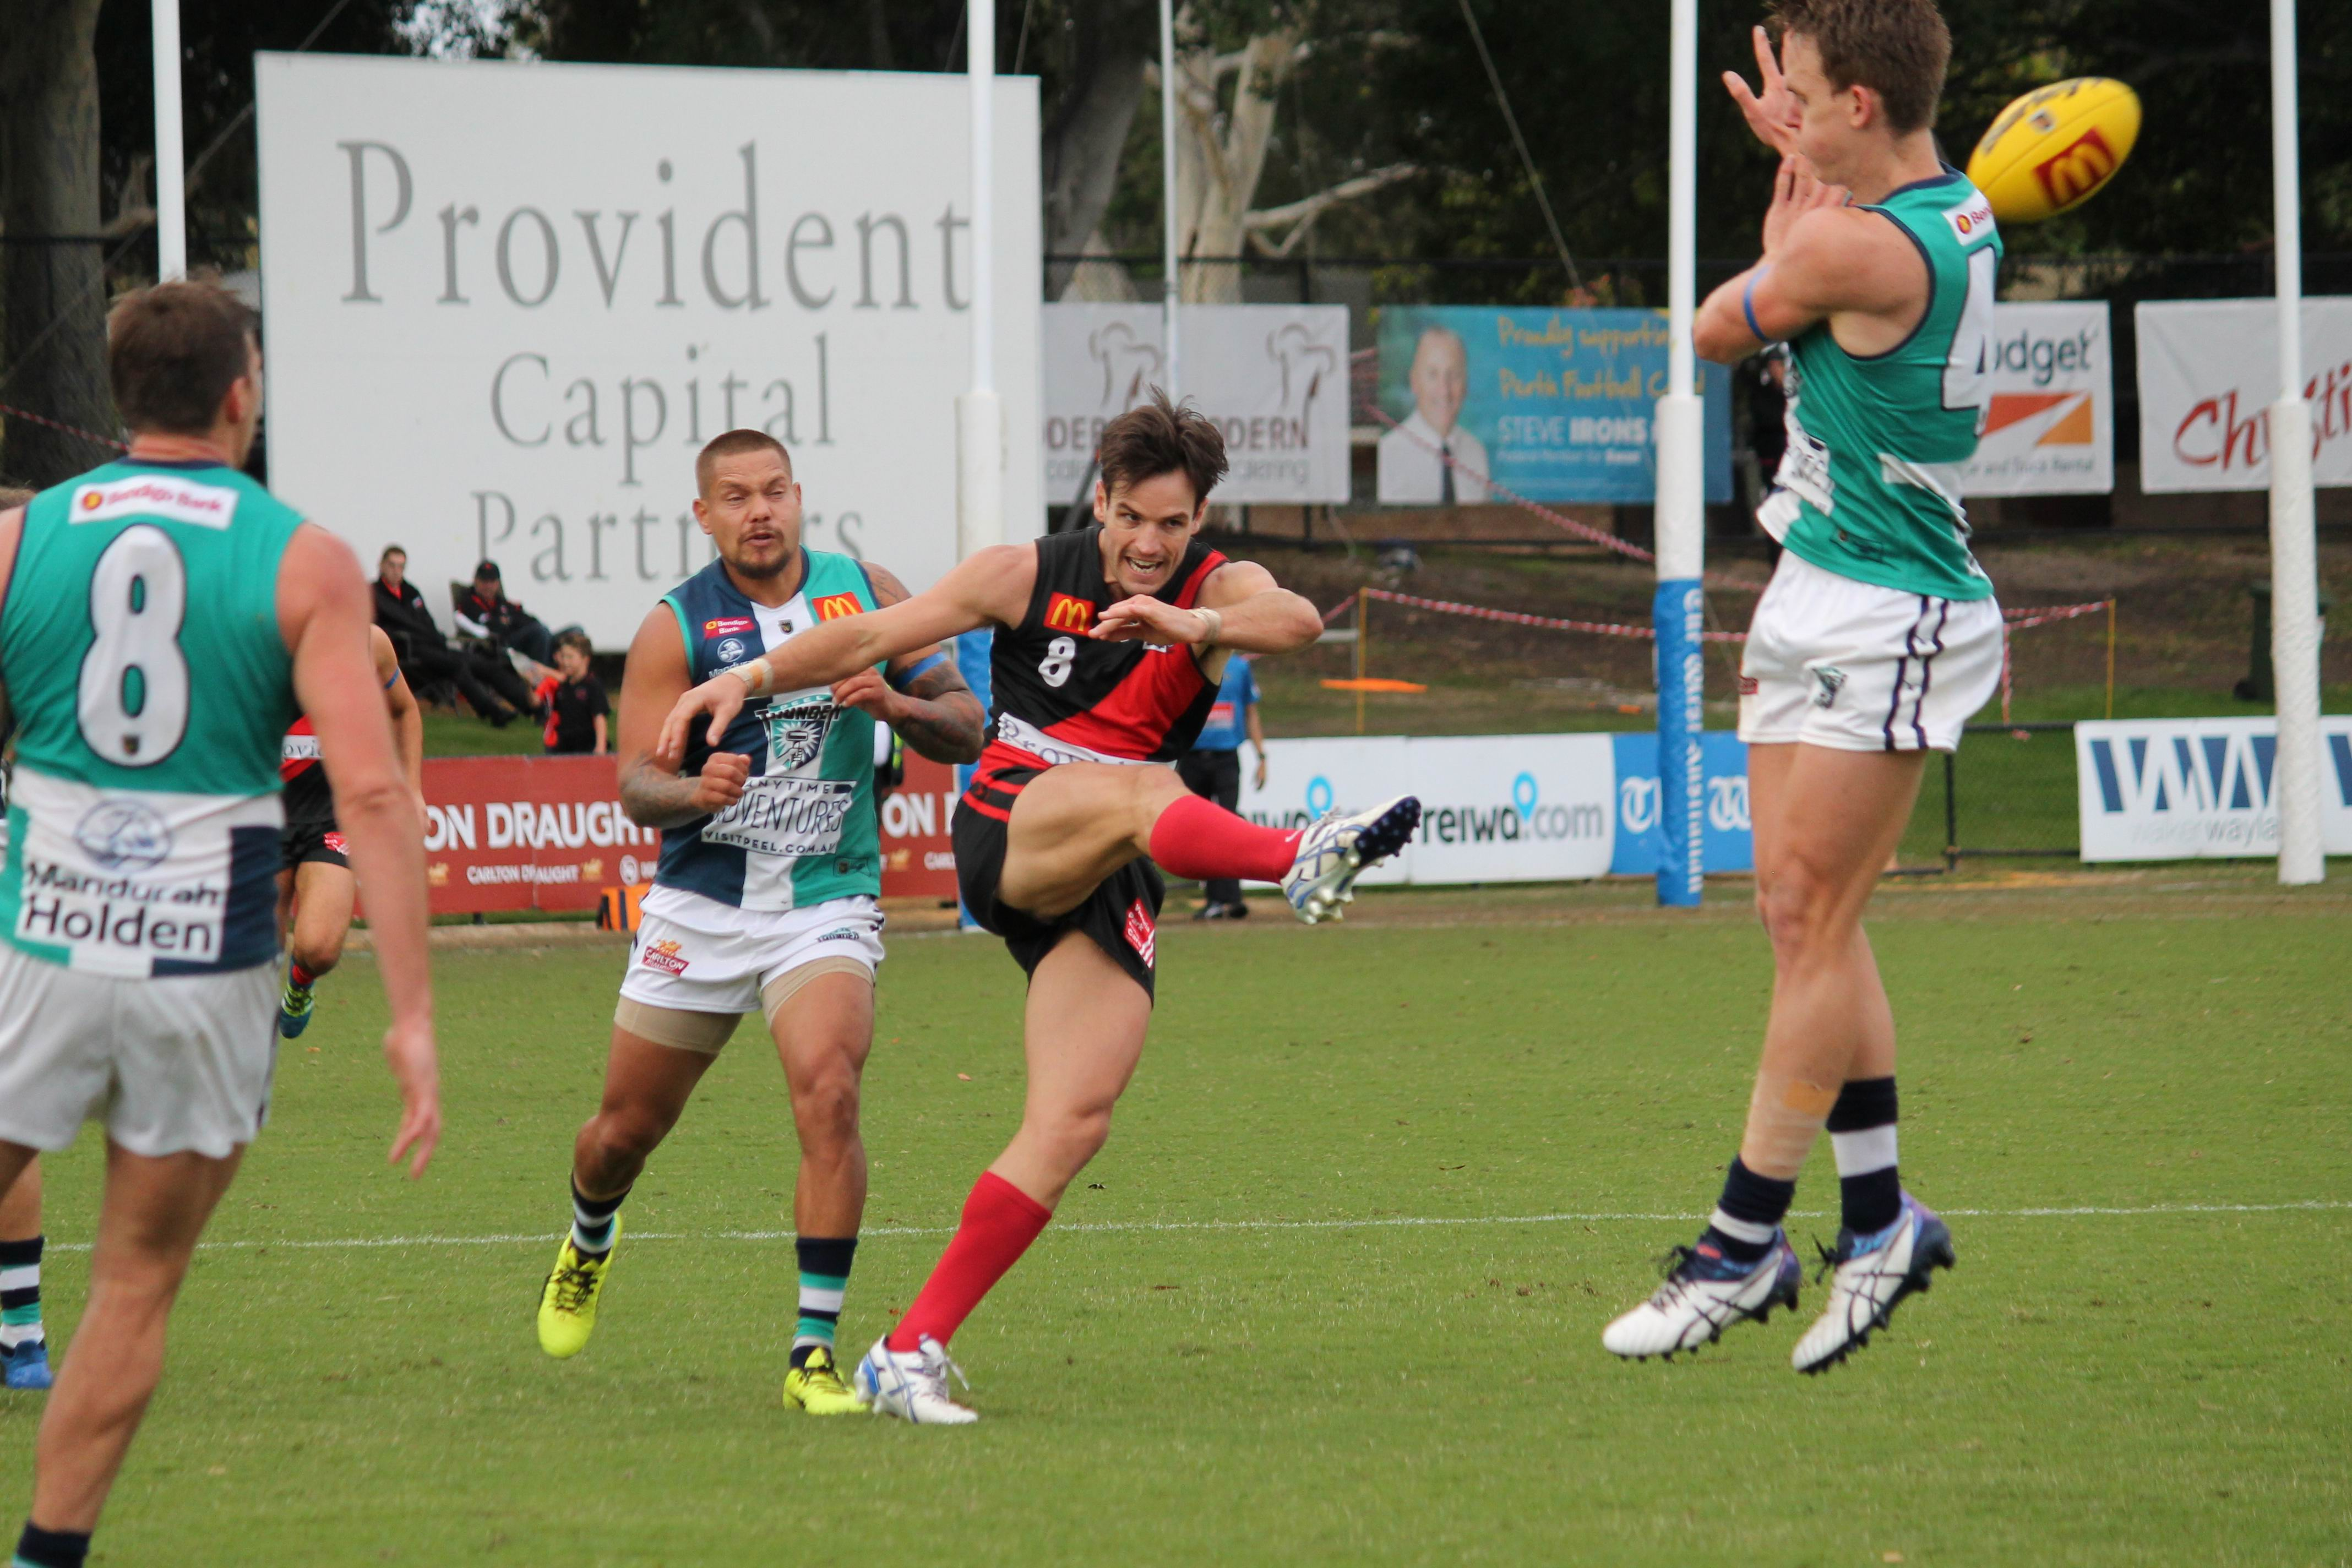 Perth lost to Peel Thunder by 90 points. Picture: Tim Slater